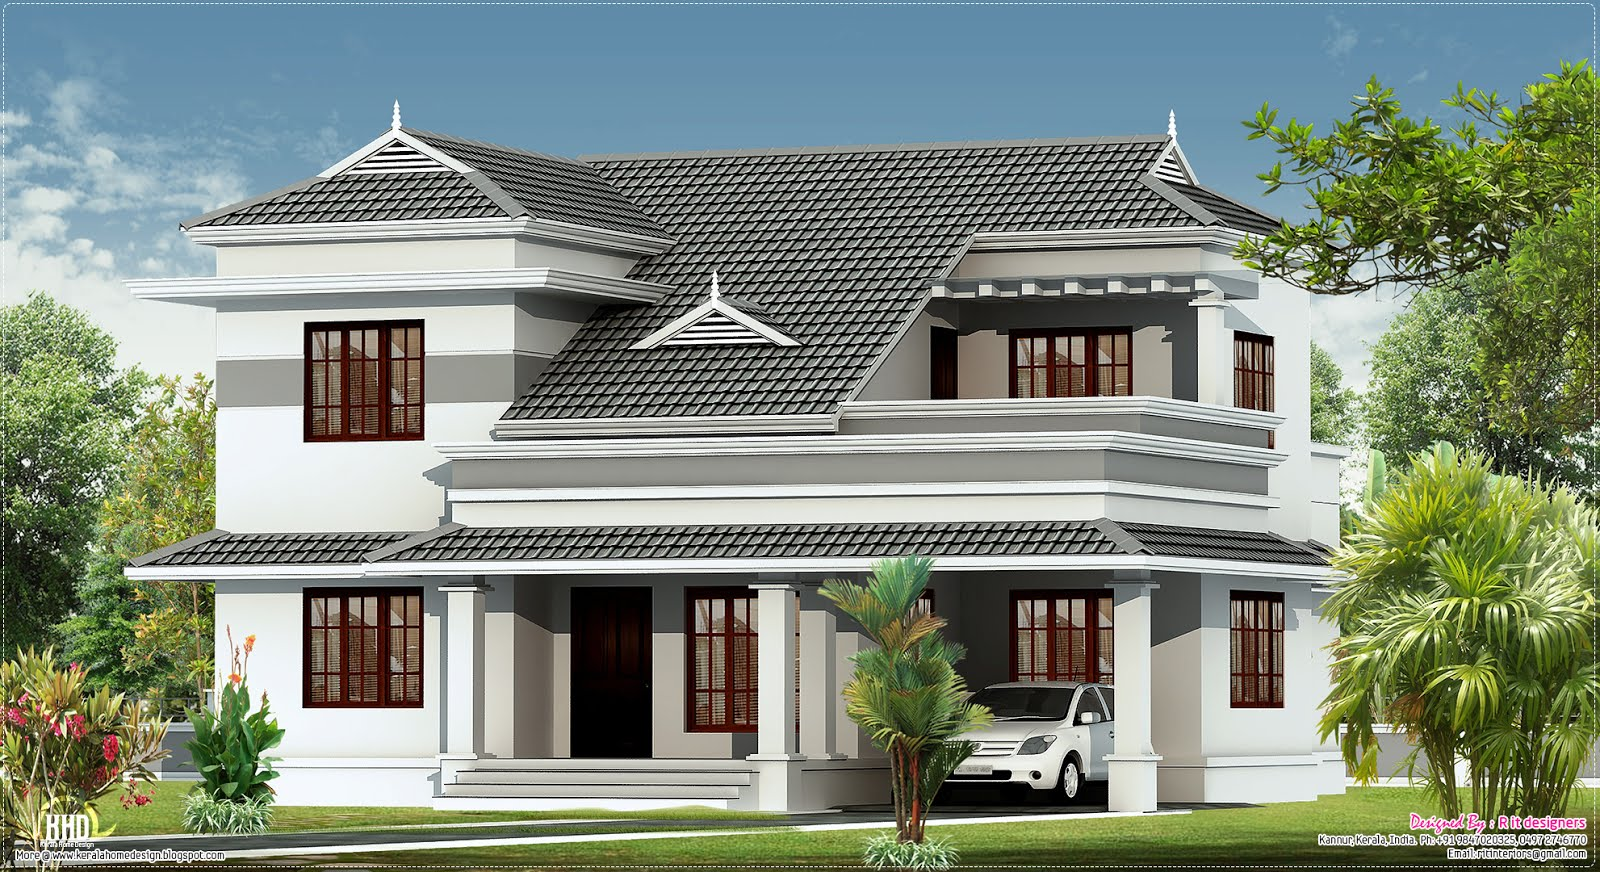 New villa design in 2250 kerala home design and for Kerala style villa plans